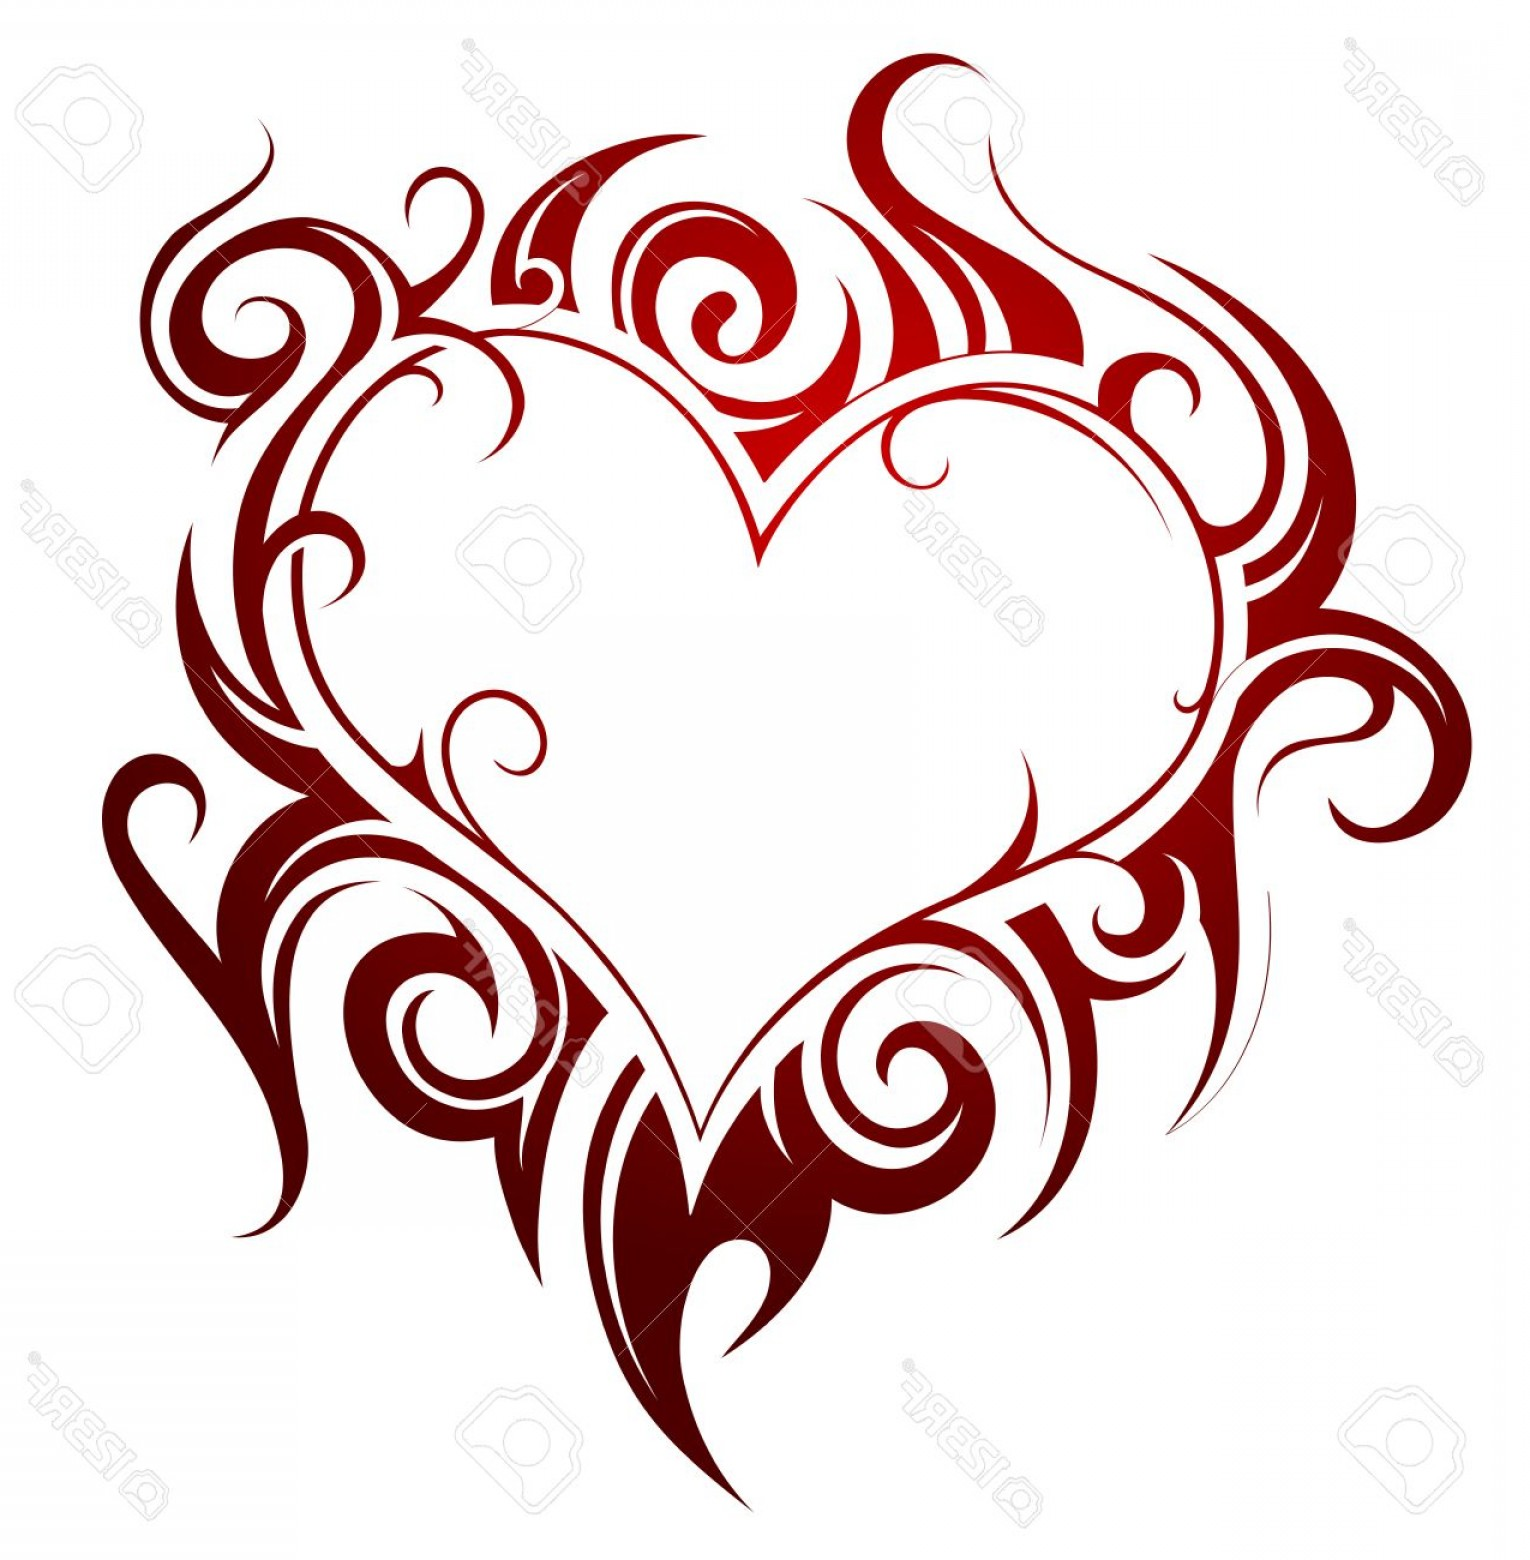 Love Heart Swirl Vector: Photostock Vector Heart Shape Tattoo With Fire Swirls